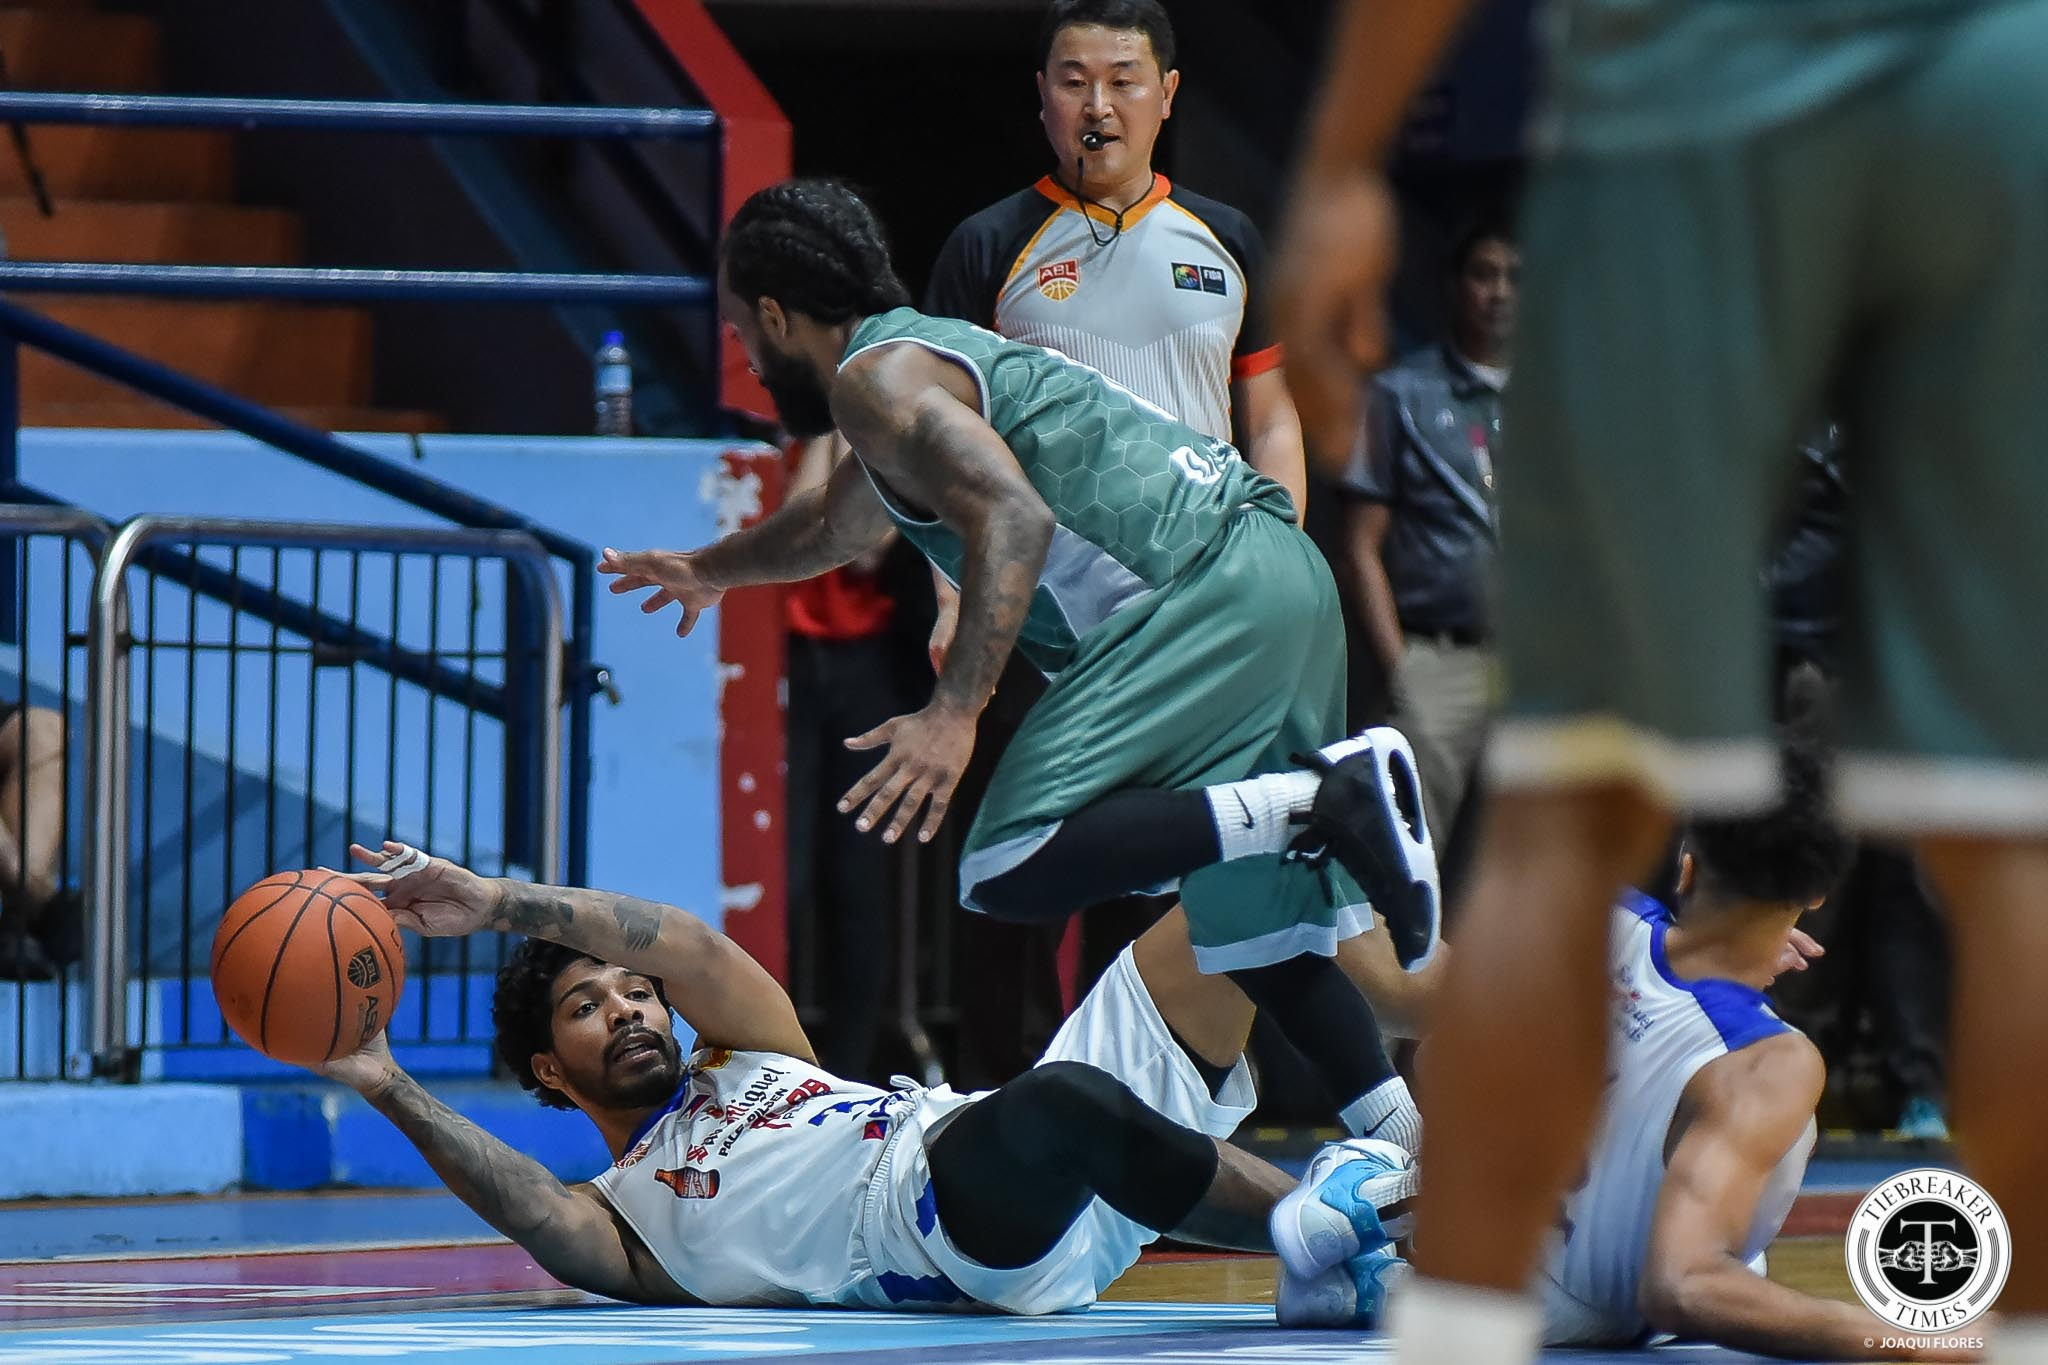 Tiebreaker Times Alab Pilipinas absorb first home loss at hands of Purves' Wolf Warriors ABL Alab Pilipinas Basketball News  Todd Purves Steven Thomas Scott Ewing Nick King Macau Wolf Warriors Lawrence Domingo Khalif Wyatt Julian Boyd Jimmy Alapag Jeremiah Gray Doug Herring Chen Cai 2019-20 ABL Season